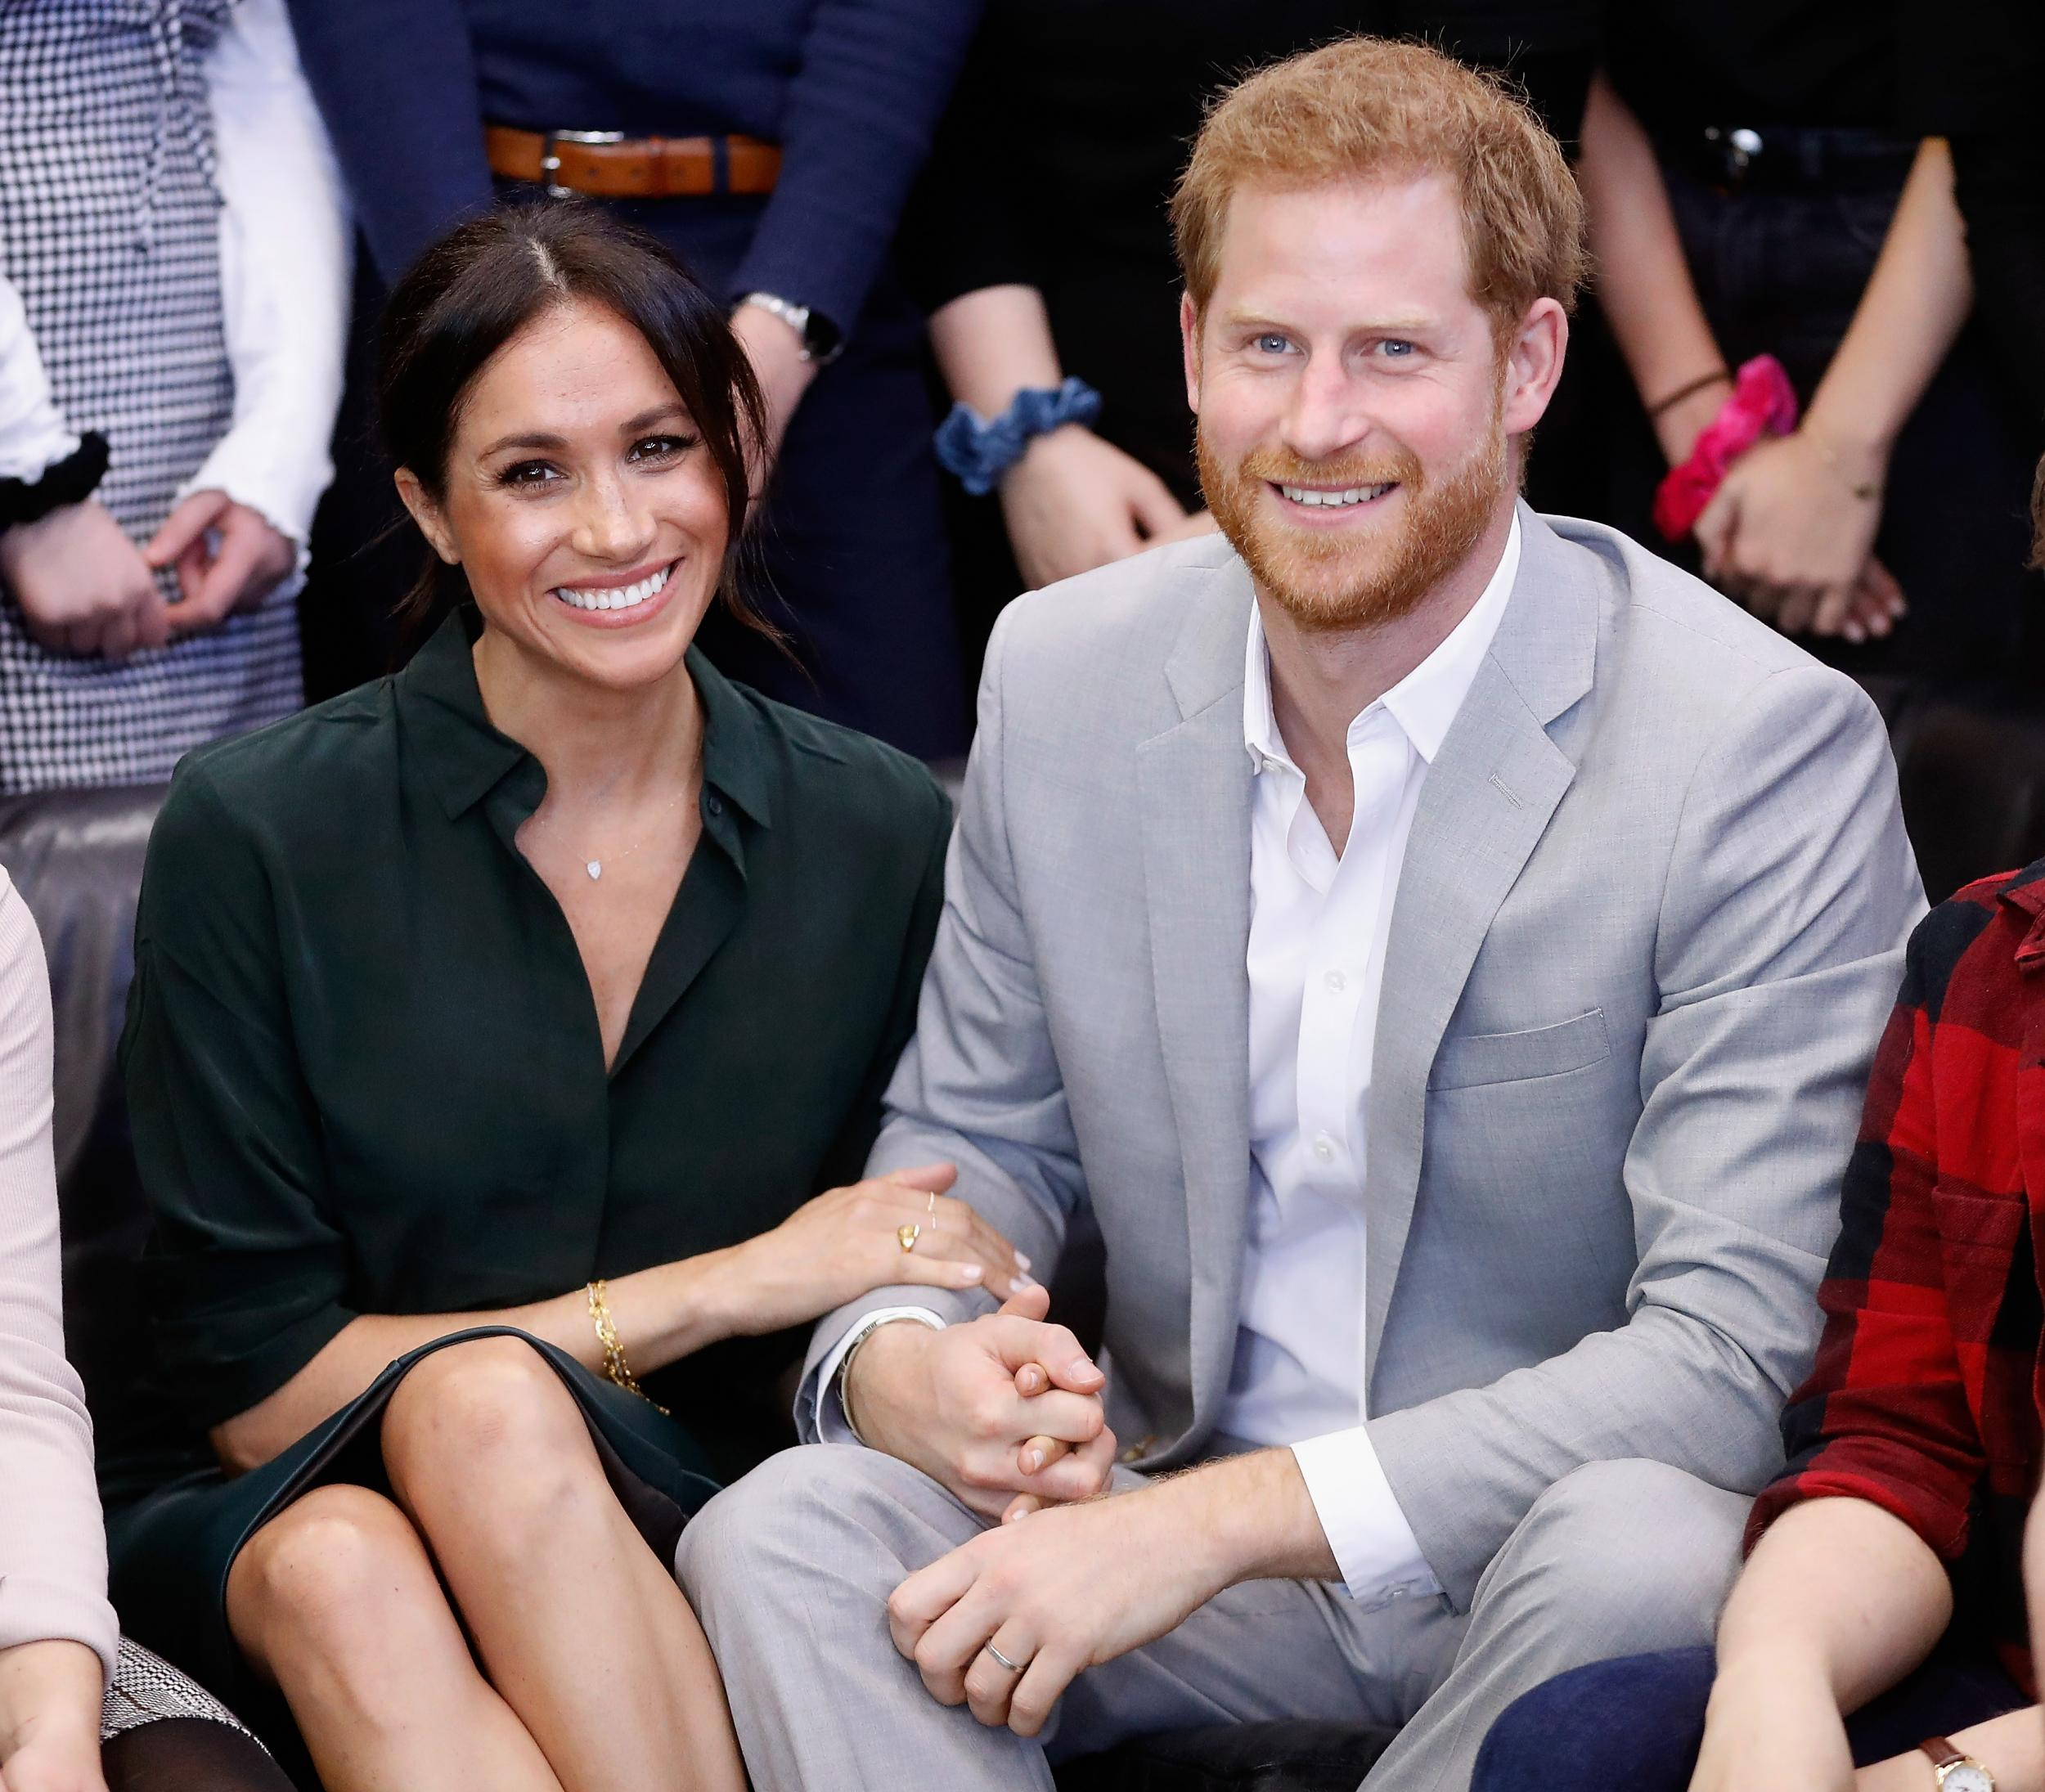 Royal family - latest news, breaking stories and comment - The